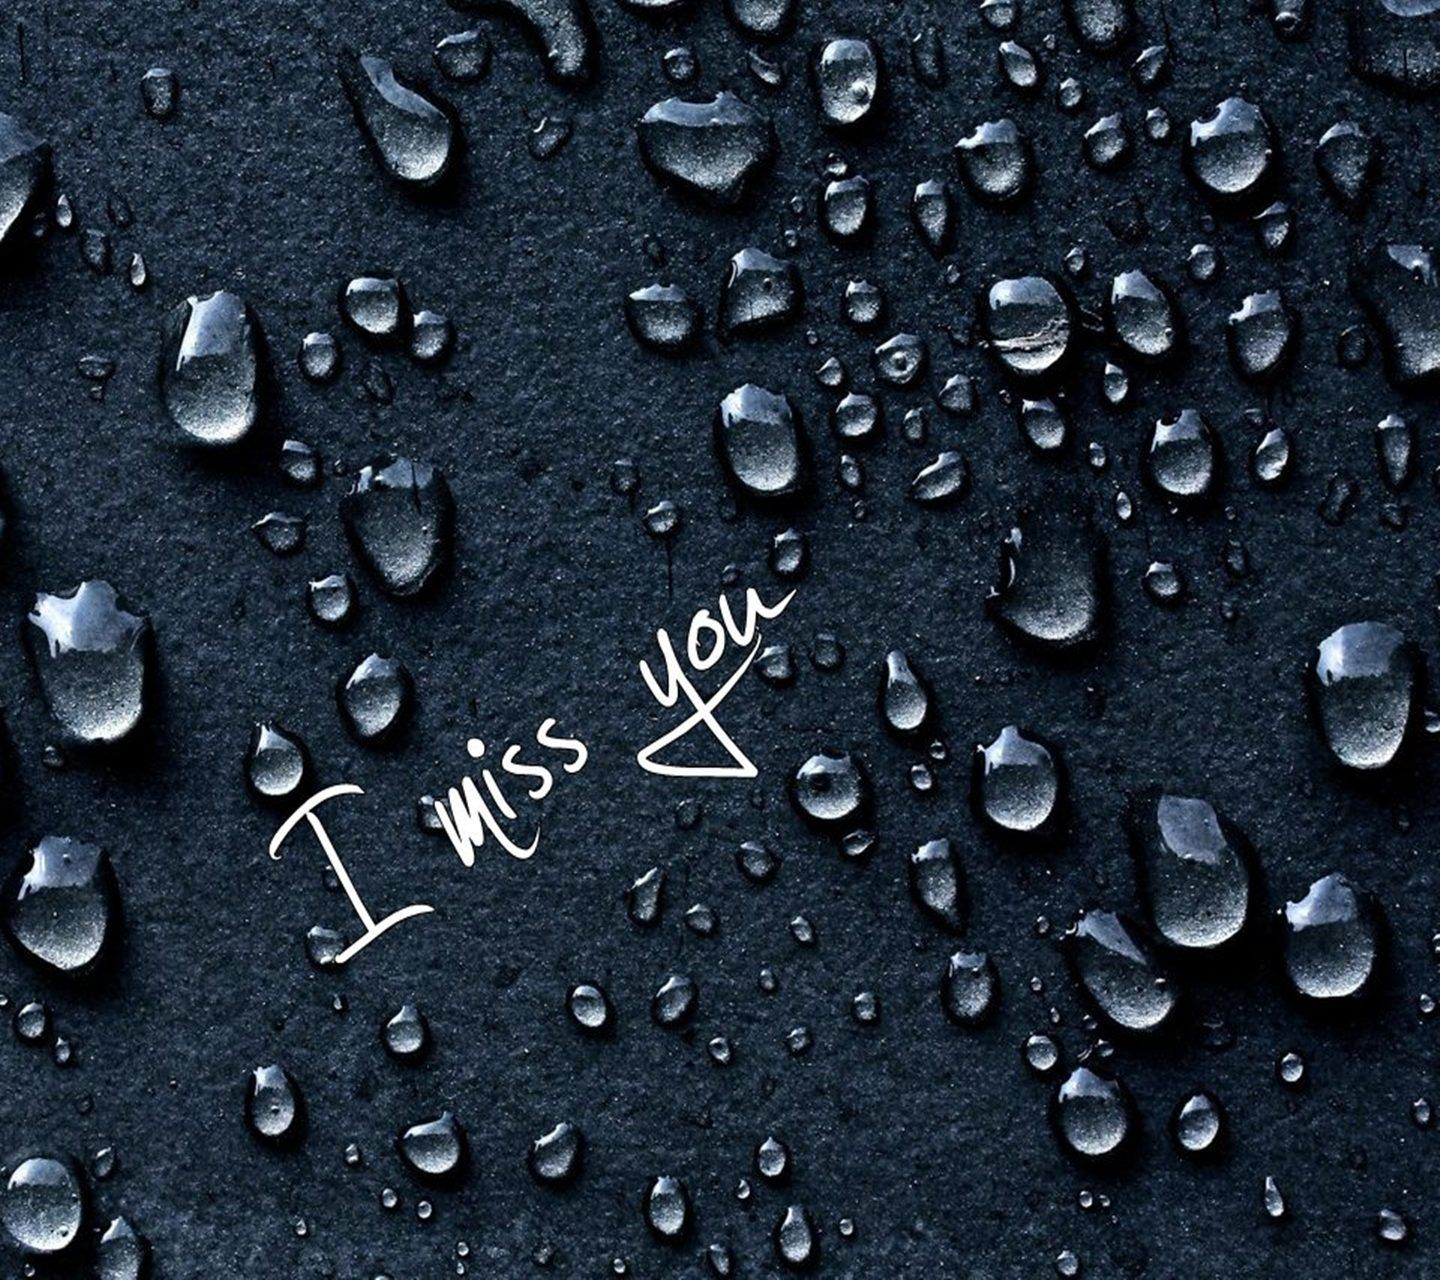 Wallpaper download miss u - Love Pair Hd Wallpapers Places To Visit Pinterest Hd Wallpaper And Wallpaper